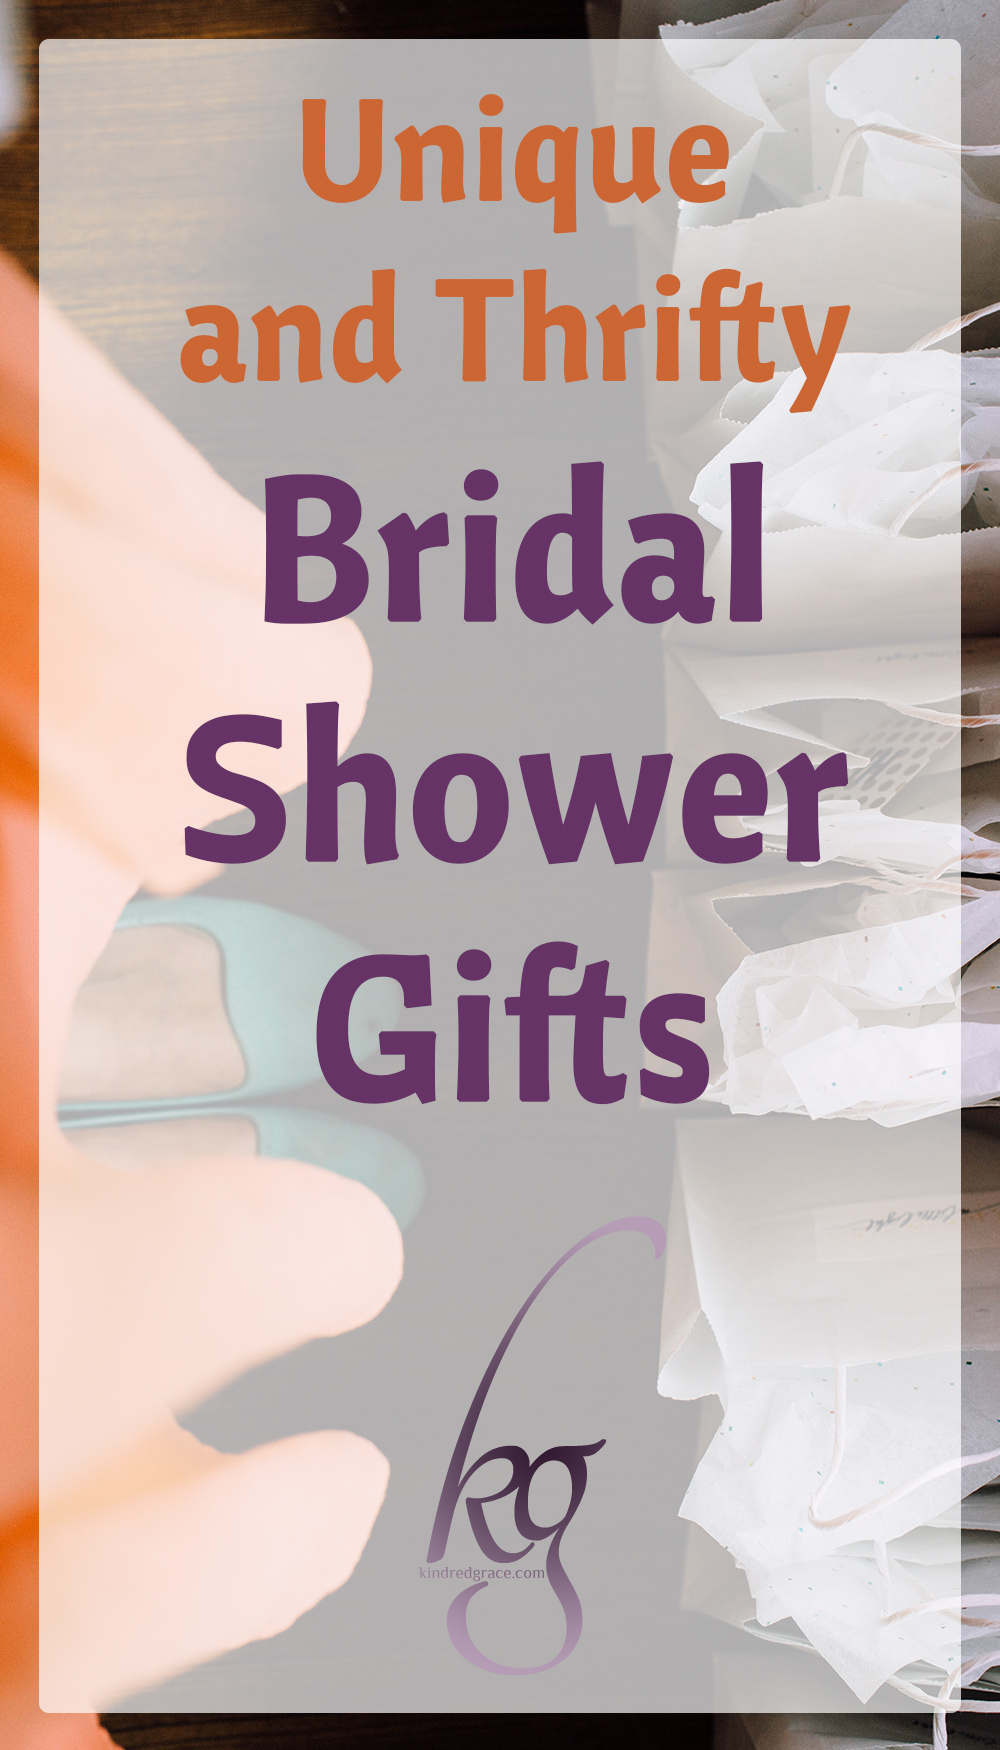 7 Unique and Thrifty Bridal Shower Gifts via @KindredGrace